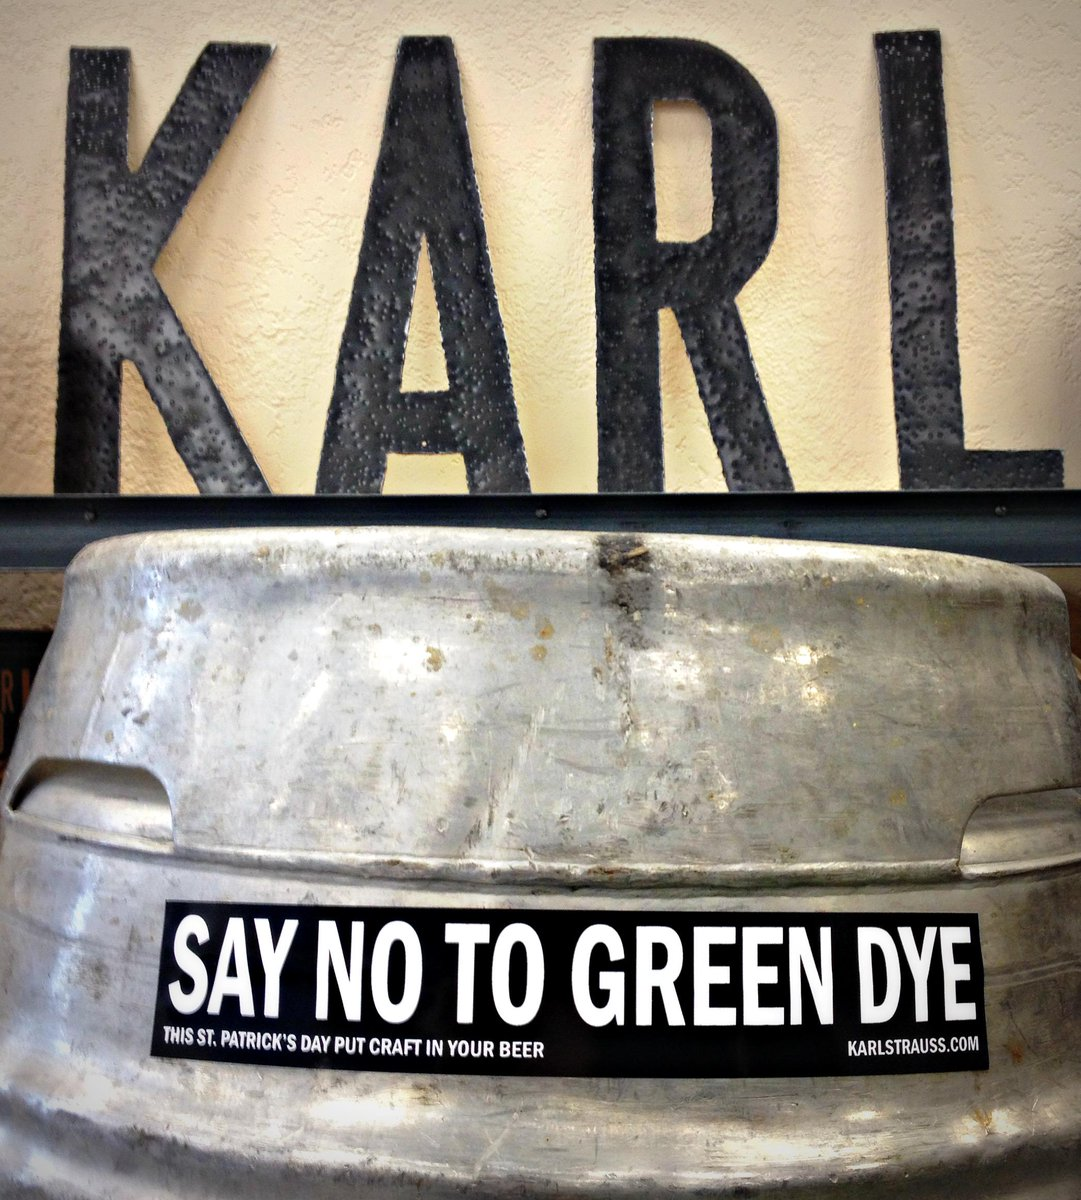 Friends don't let friends drink green beer. #JustSayNo http://t.co/F76bjMpybT